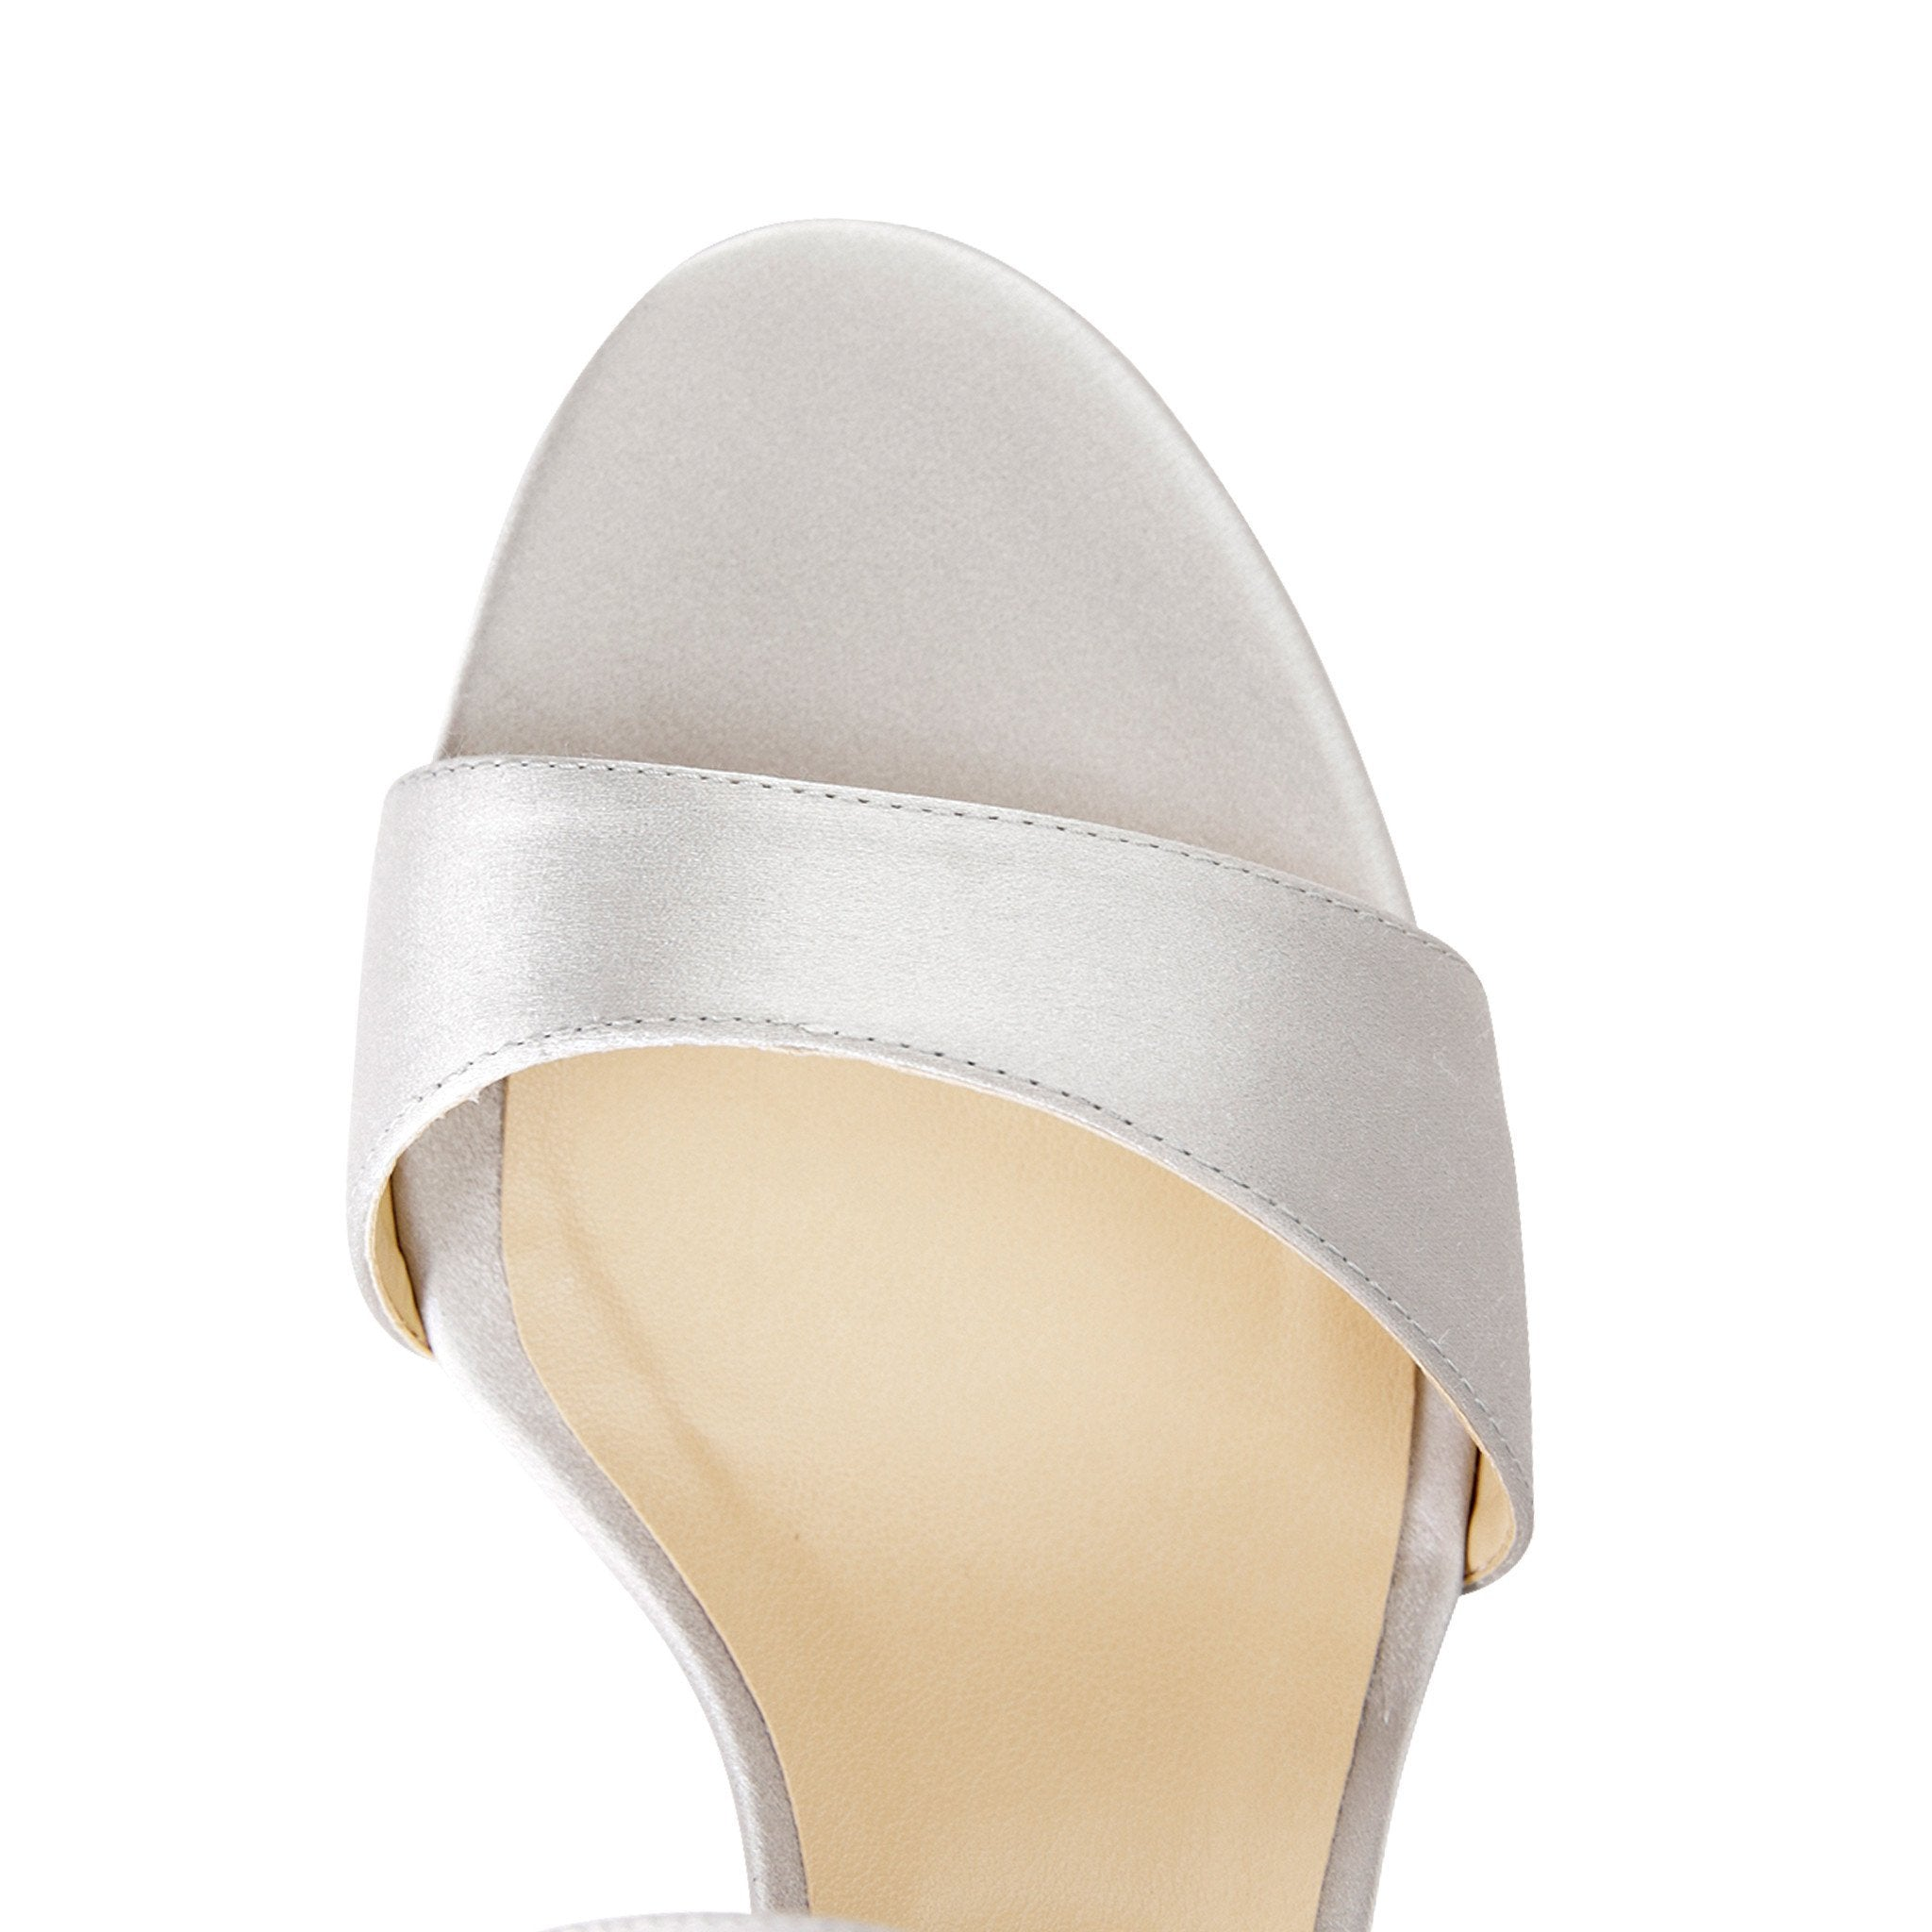 MODENA - Satin Perla, VIAJIYU - Women's Hand Made Sustainable Luxury Shoes. Made in Italy. Made to Order.